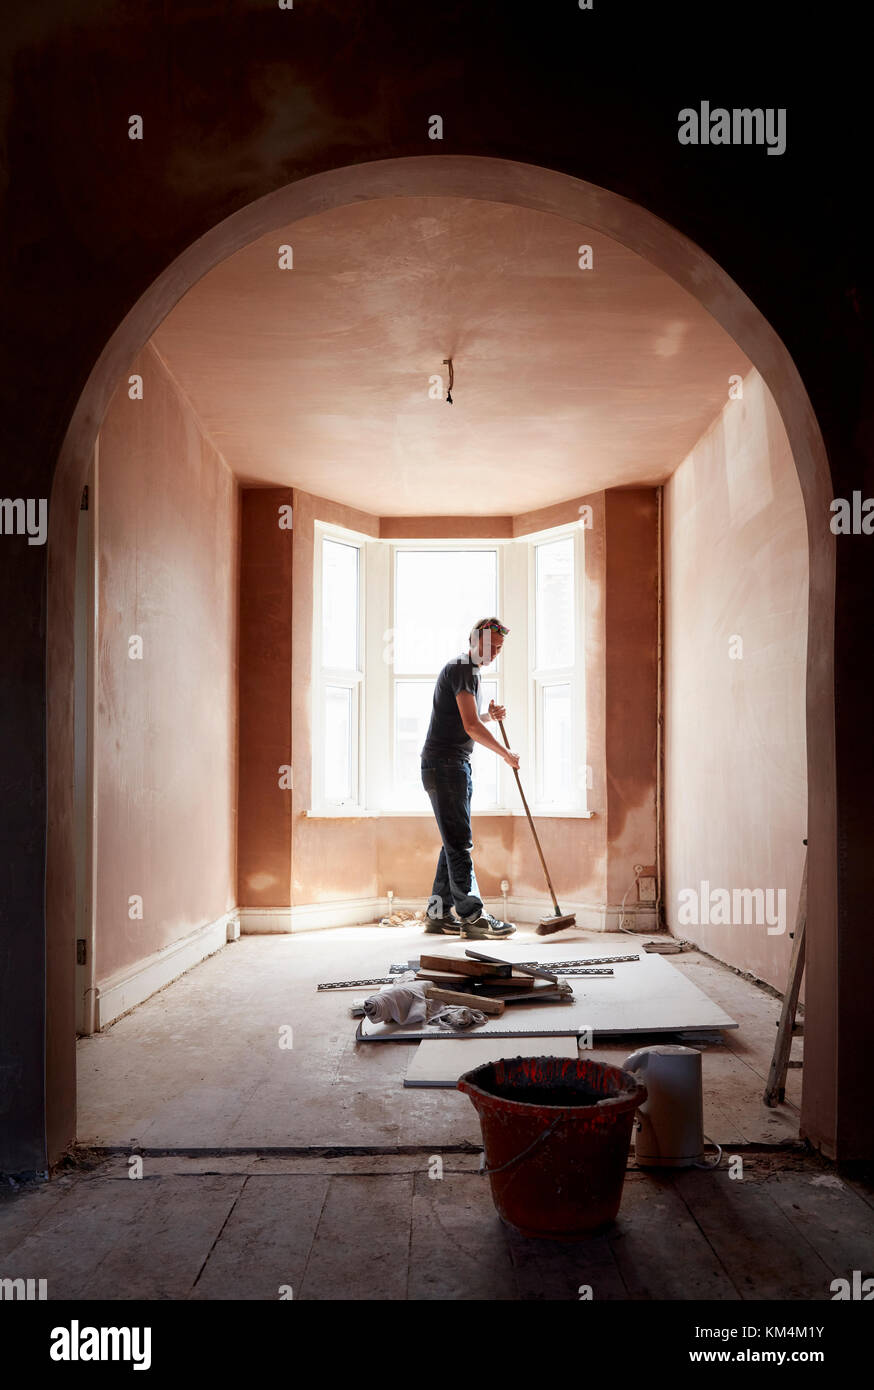 A builder sweeping and tidying up in a renovated replastered house with an archway. - Stock Image